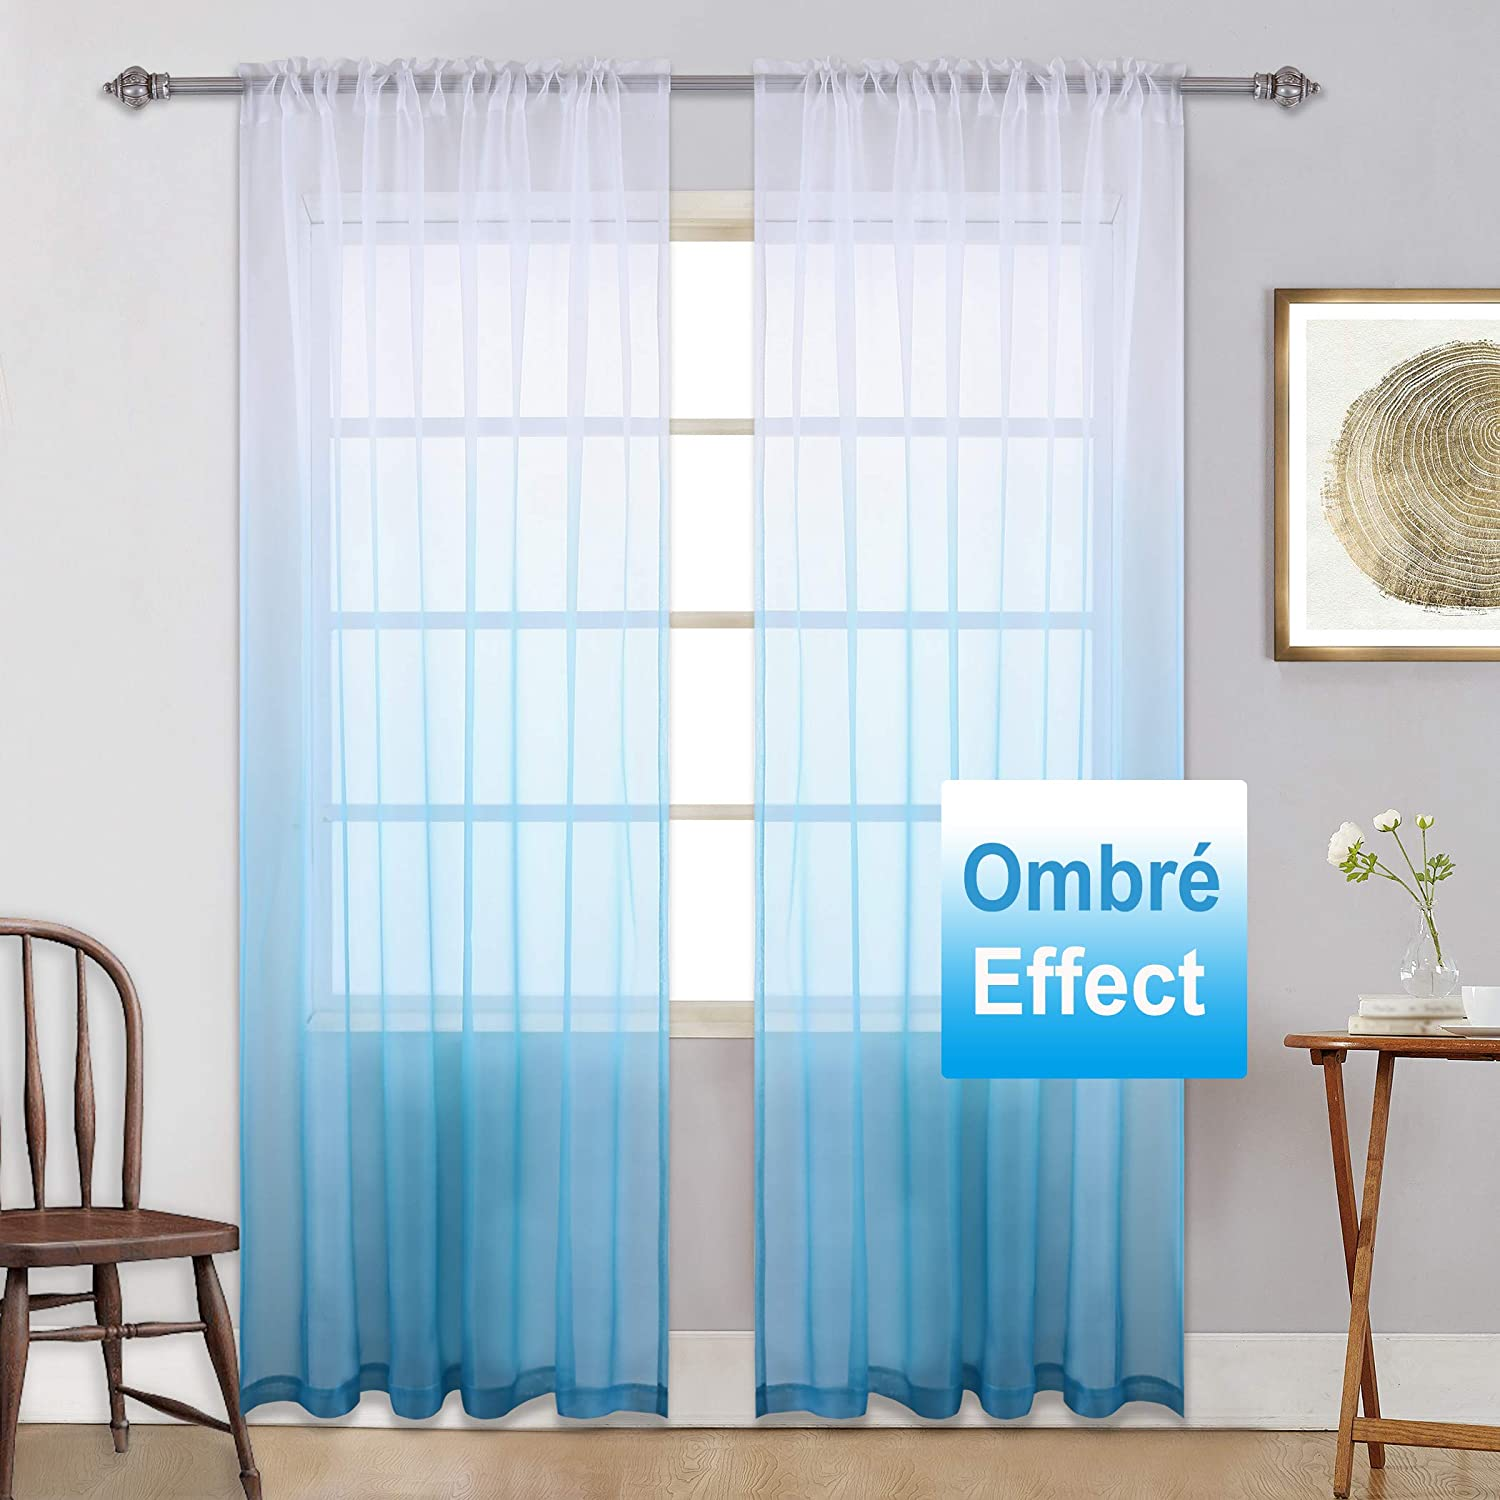 Ombre Curtains Blue Sheer Curtains - Gradient Girls Bedroom Semi Sheer  Curtain Set Window Voile Panel Curtain for Girls Room/Closet/Kids Teenage  ...